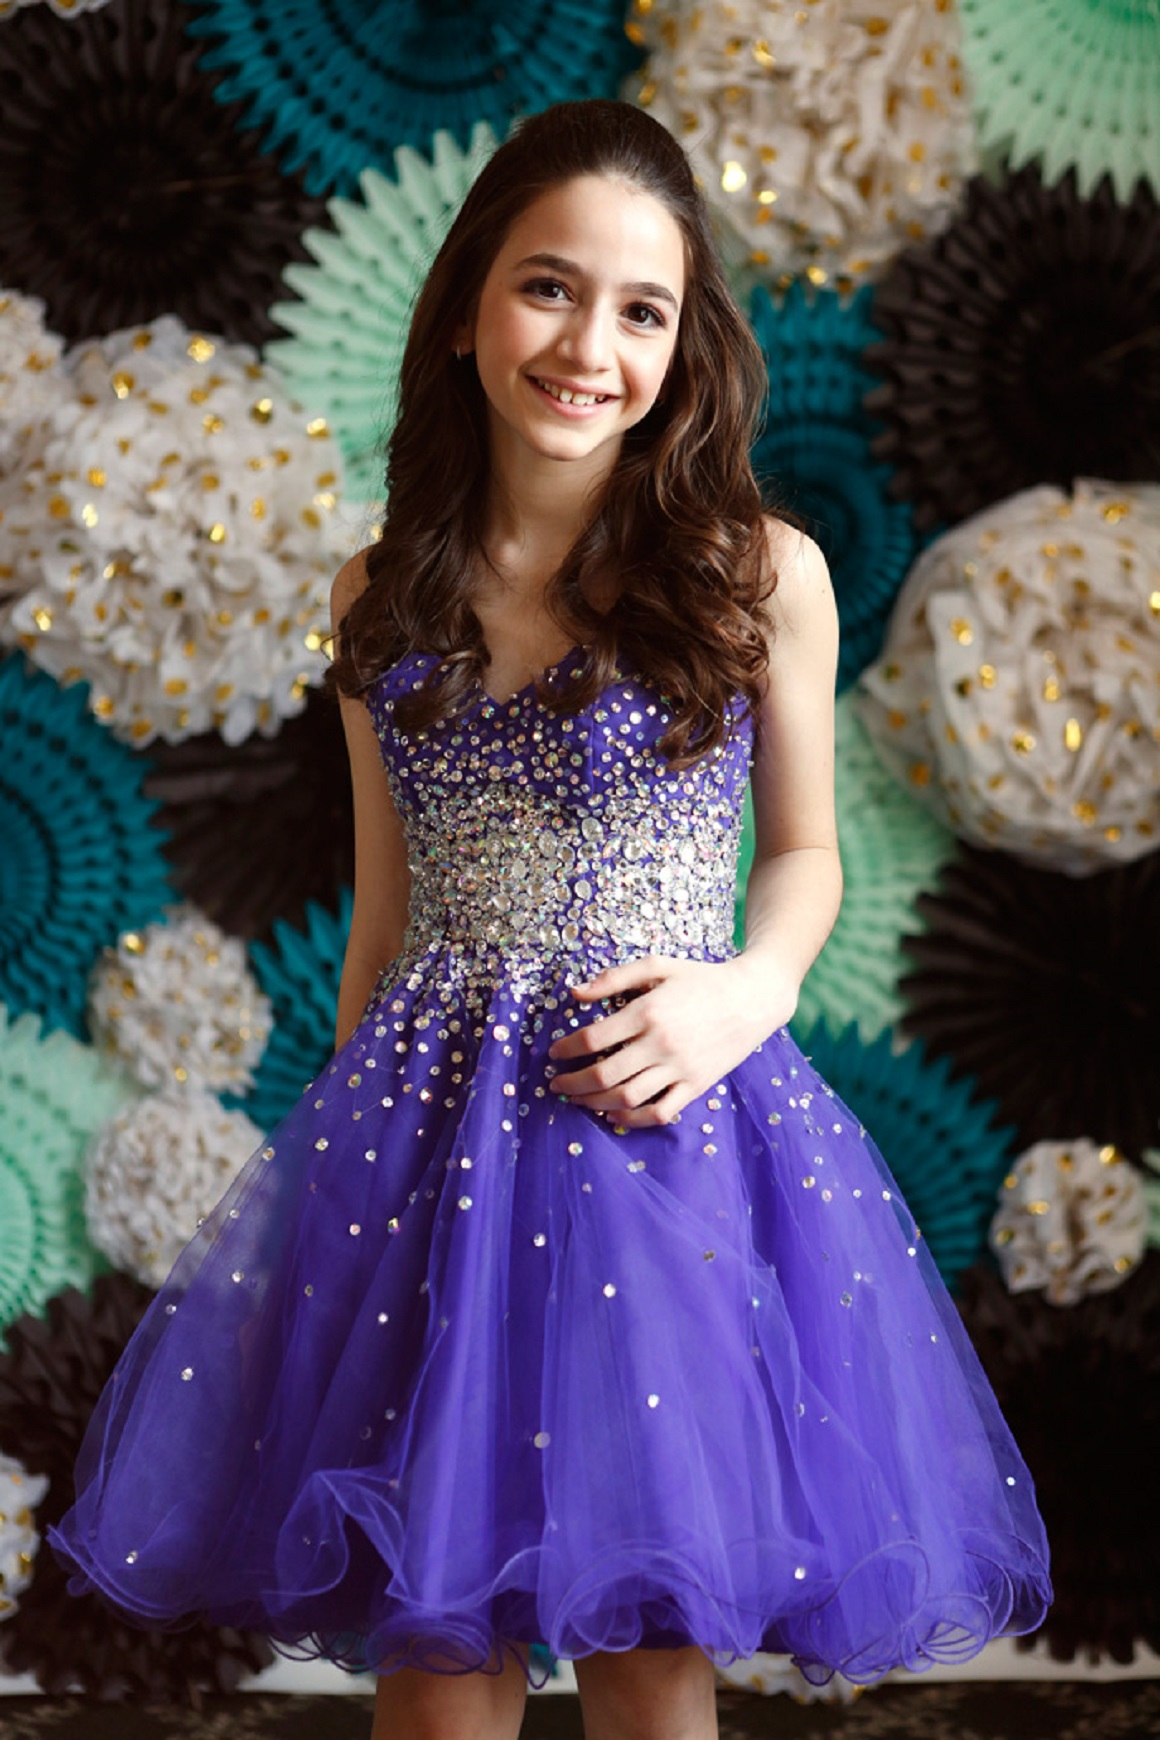 Picture Mitzvah Bat Mitzvah Bar Mitzvah Dress Mitzvah Attire Guide Hylah Events Bat Mitzvah Dresses Westchester Bat Mitzvah Dresses Tweens wedding dress Bat Mitzvah Dresses